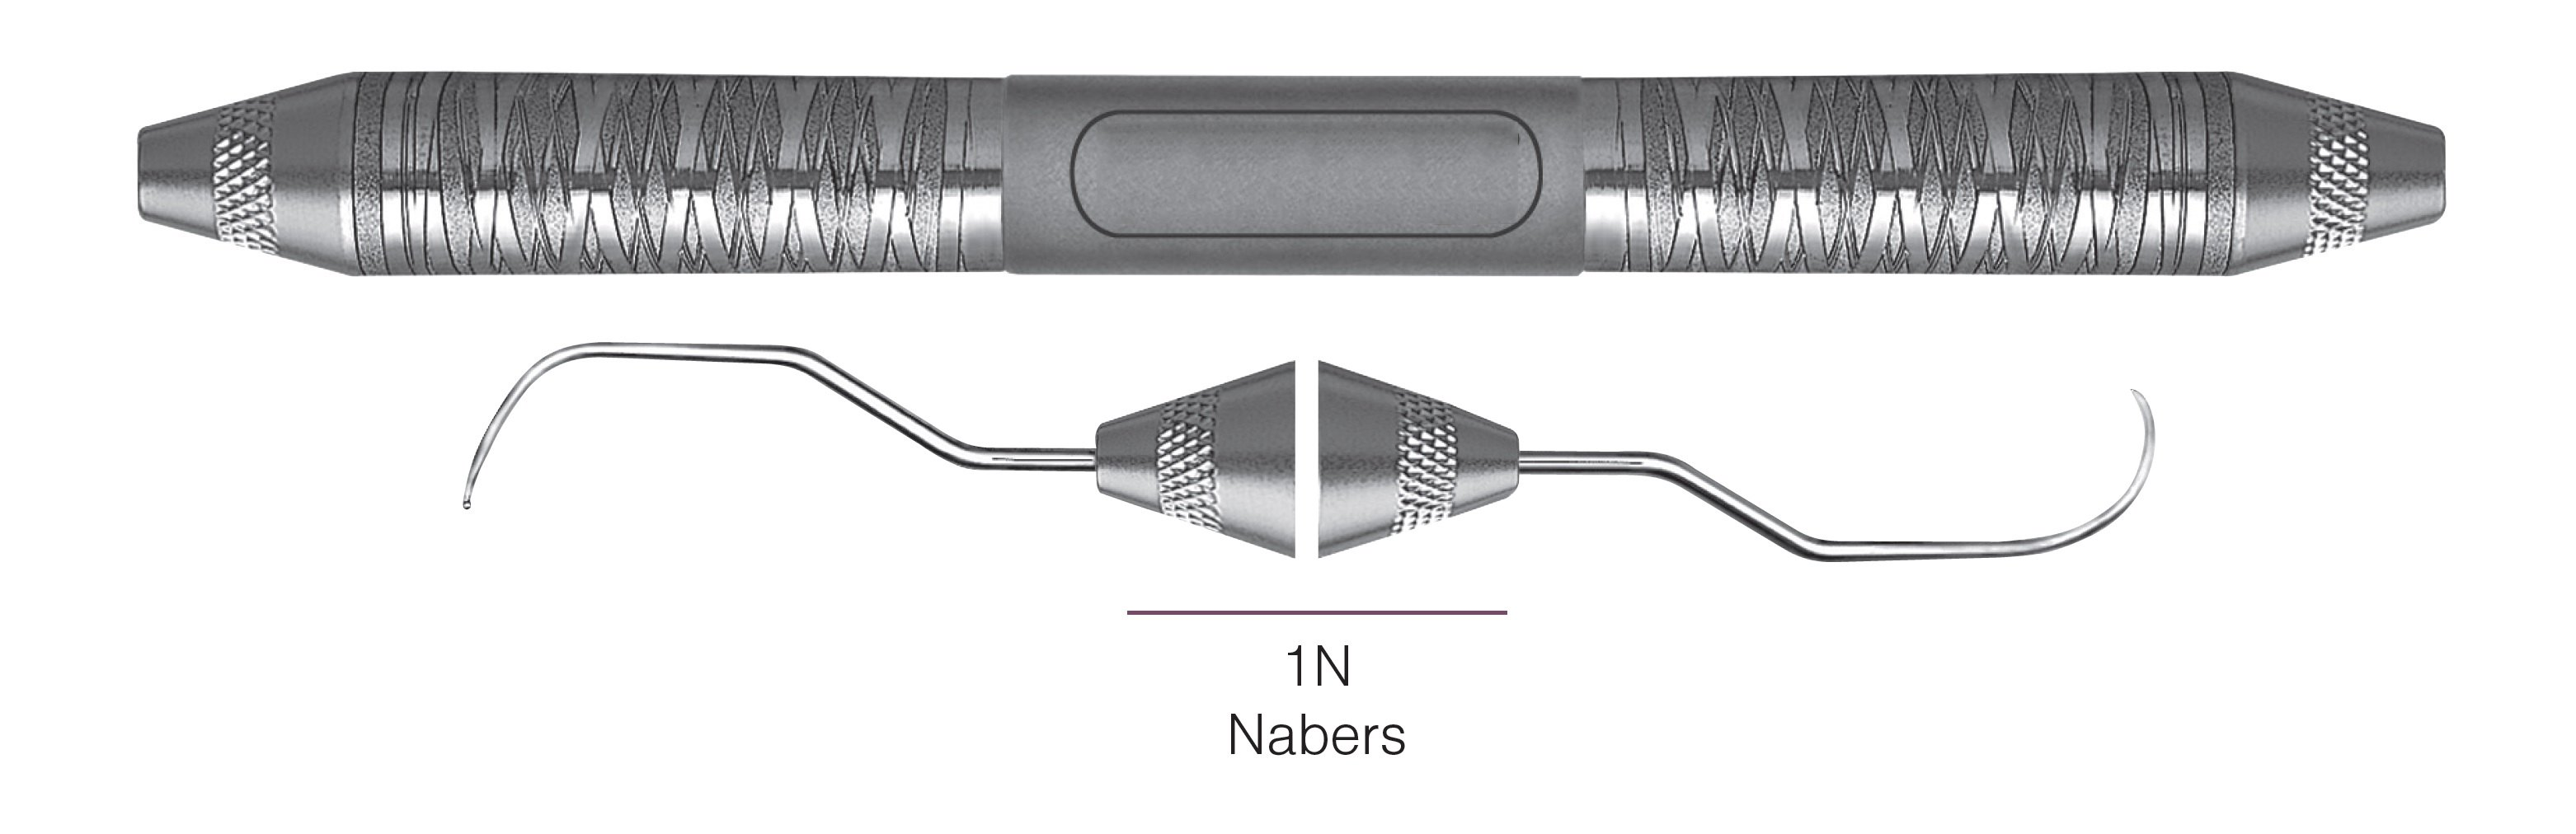 HF-P1N6-6, DOUBLE-ENDED FURCATION PROBES 1N/Nabers, Nabers Probes for assessing furcation areas, Handle Satin Steel, Aluminum Titanium Nitride (AlTiN) Coating, Double Ended